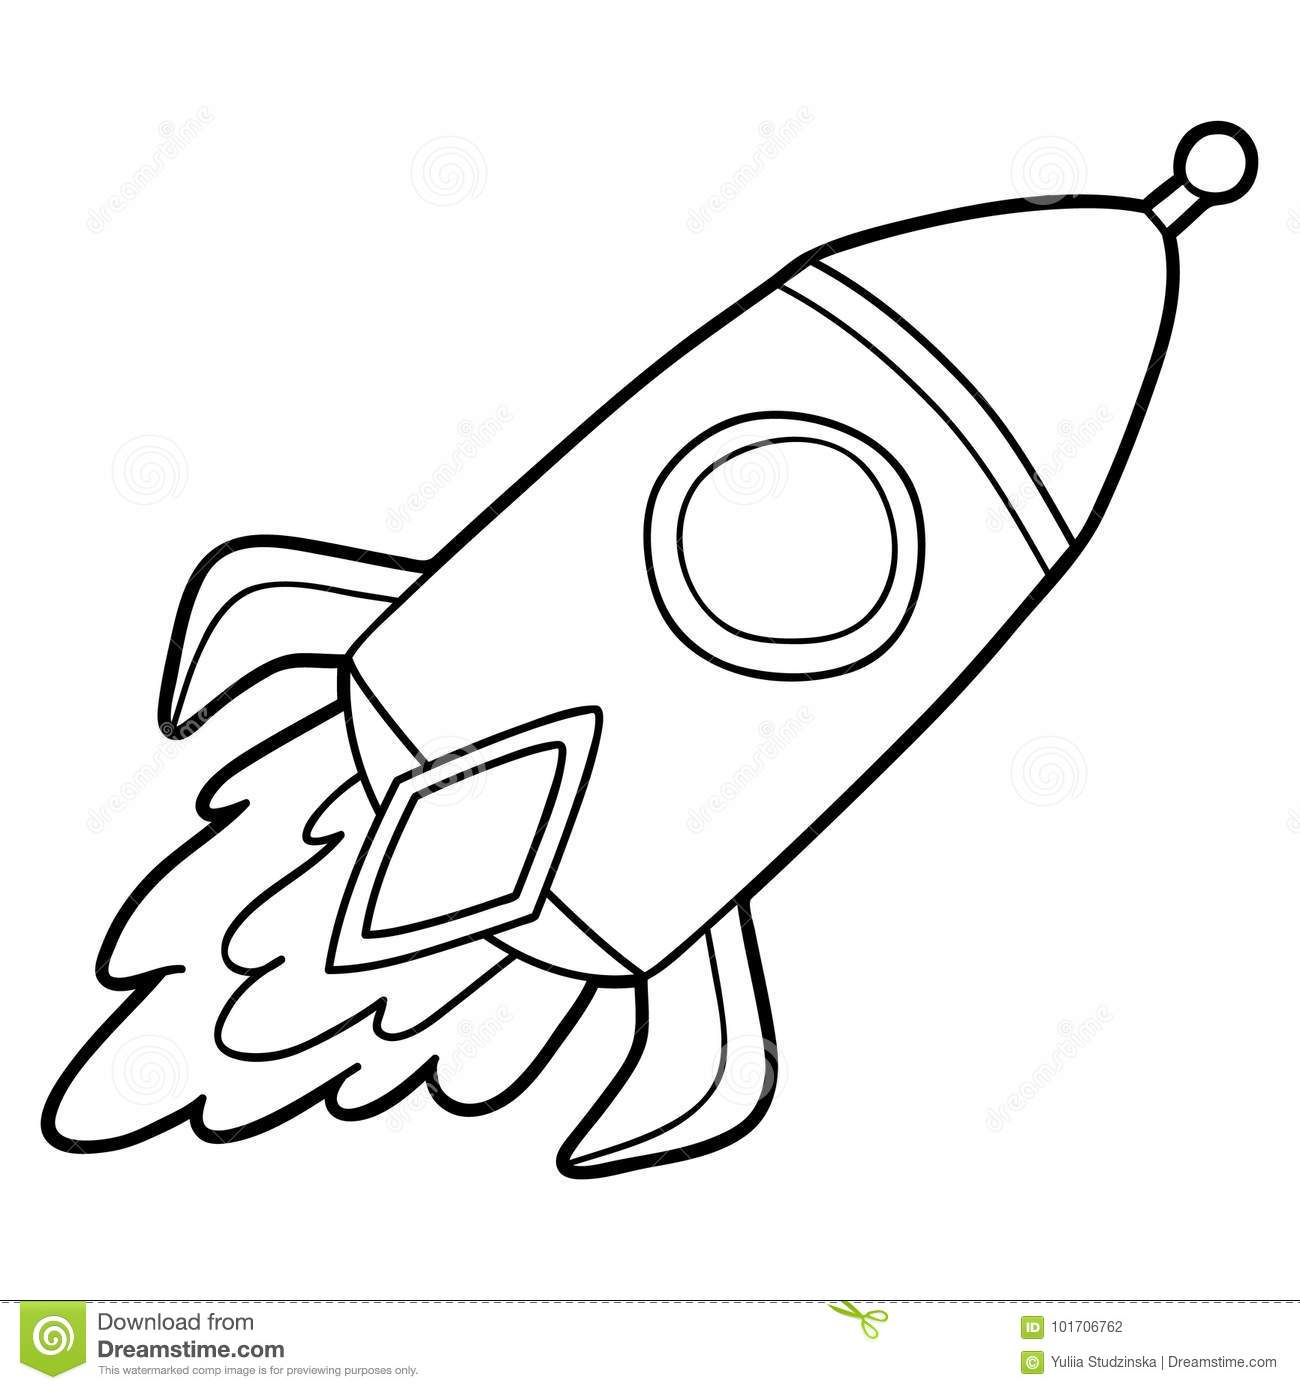 Outline Rocket Stock Vector Illustration Of Contour